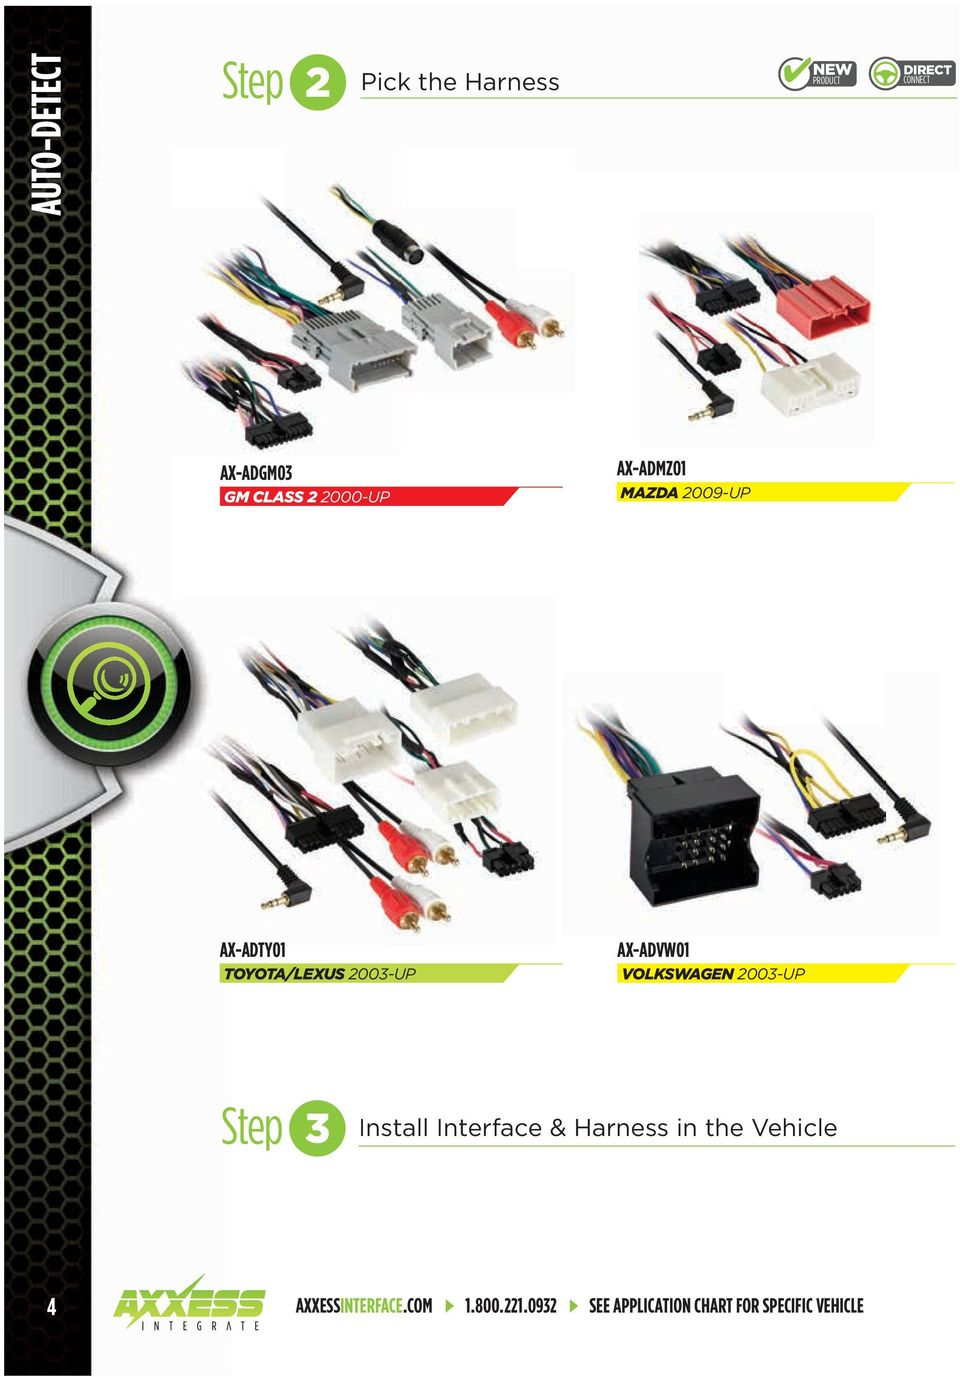 New Direct Connect Improved Product Usb Updatable And 2012 Toyota Venza Controller Area Network Wiring Diagram Volkswagen 2003 Up Step 3 Install Interface Harness In The Vehicle 4